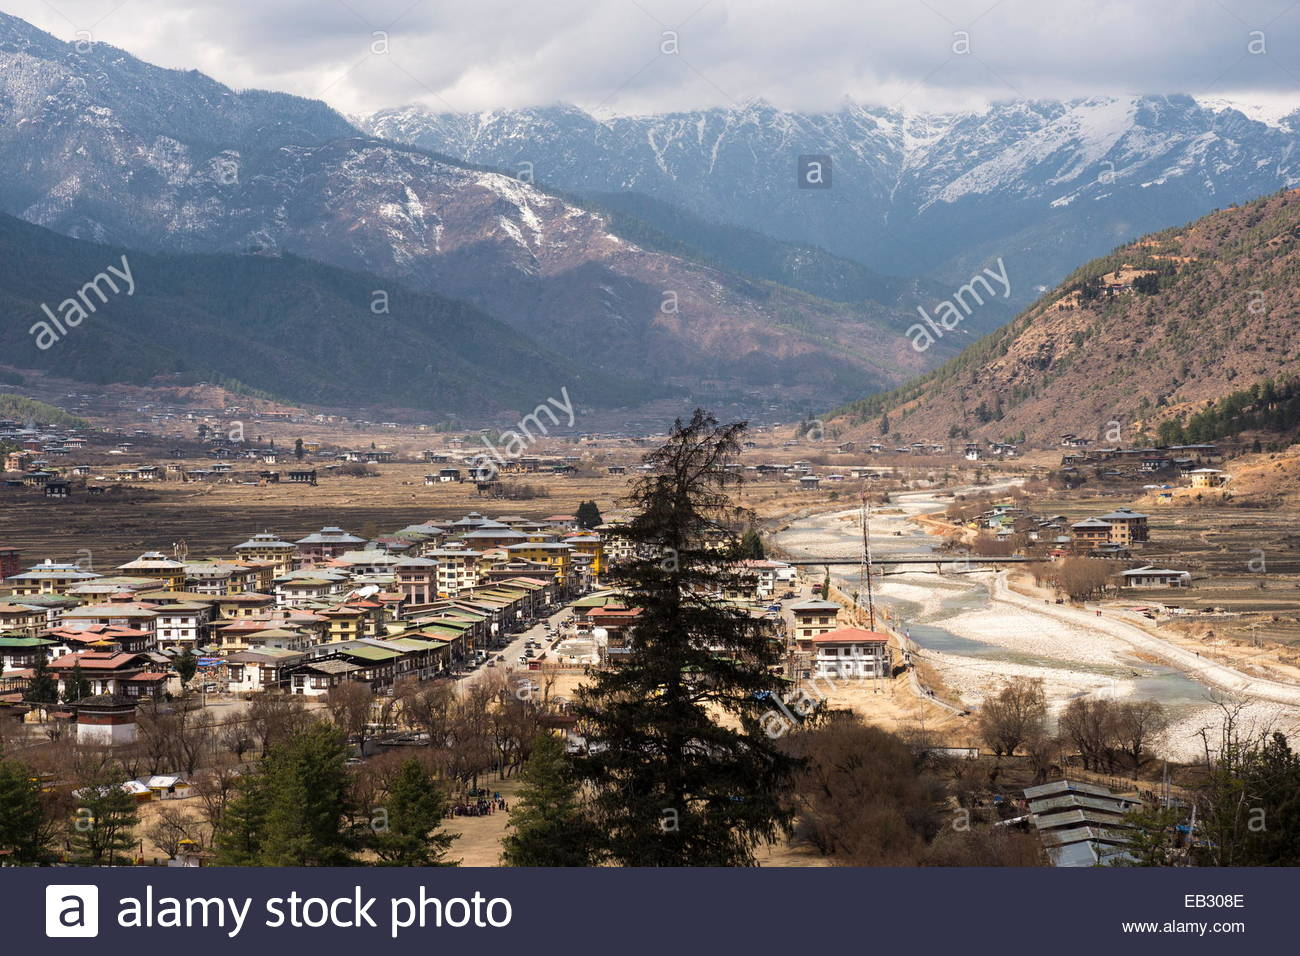 Paro Chhu-river-and and the city of Paro, viewed from Paro Dzong, also known as Rinpung Dzong, a Drukpa Kagyu Buddhist - Stock Image